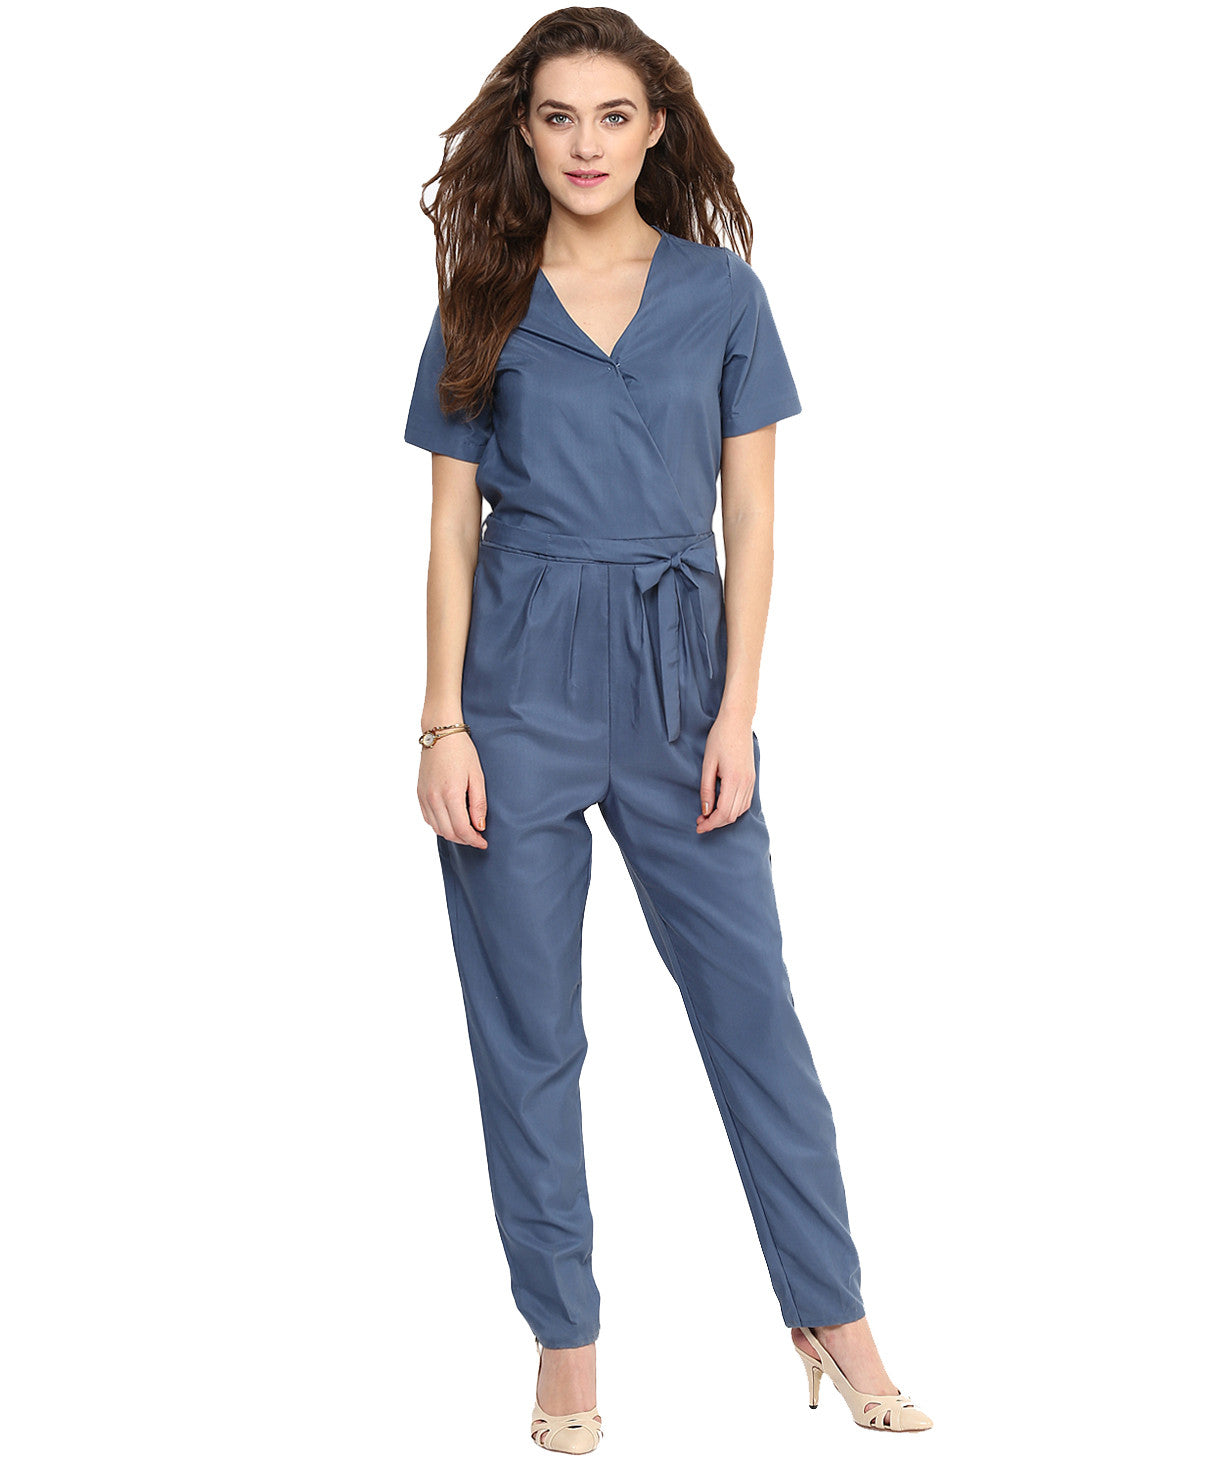 Blue Wrap Jumpsuit. BUY 1 GET 3